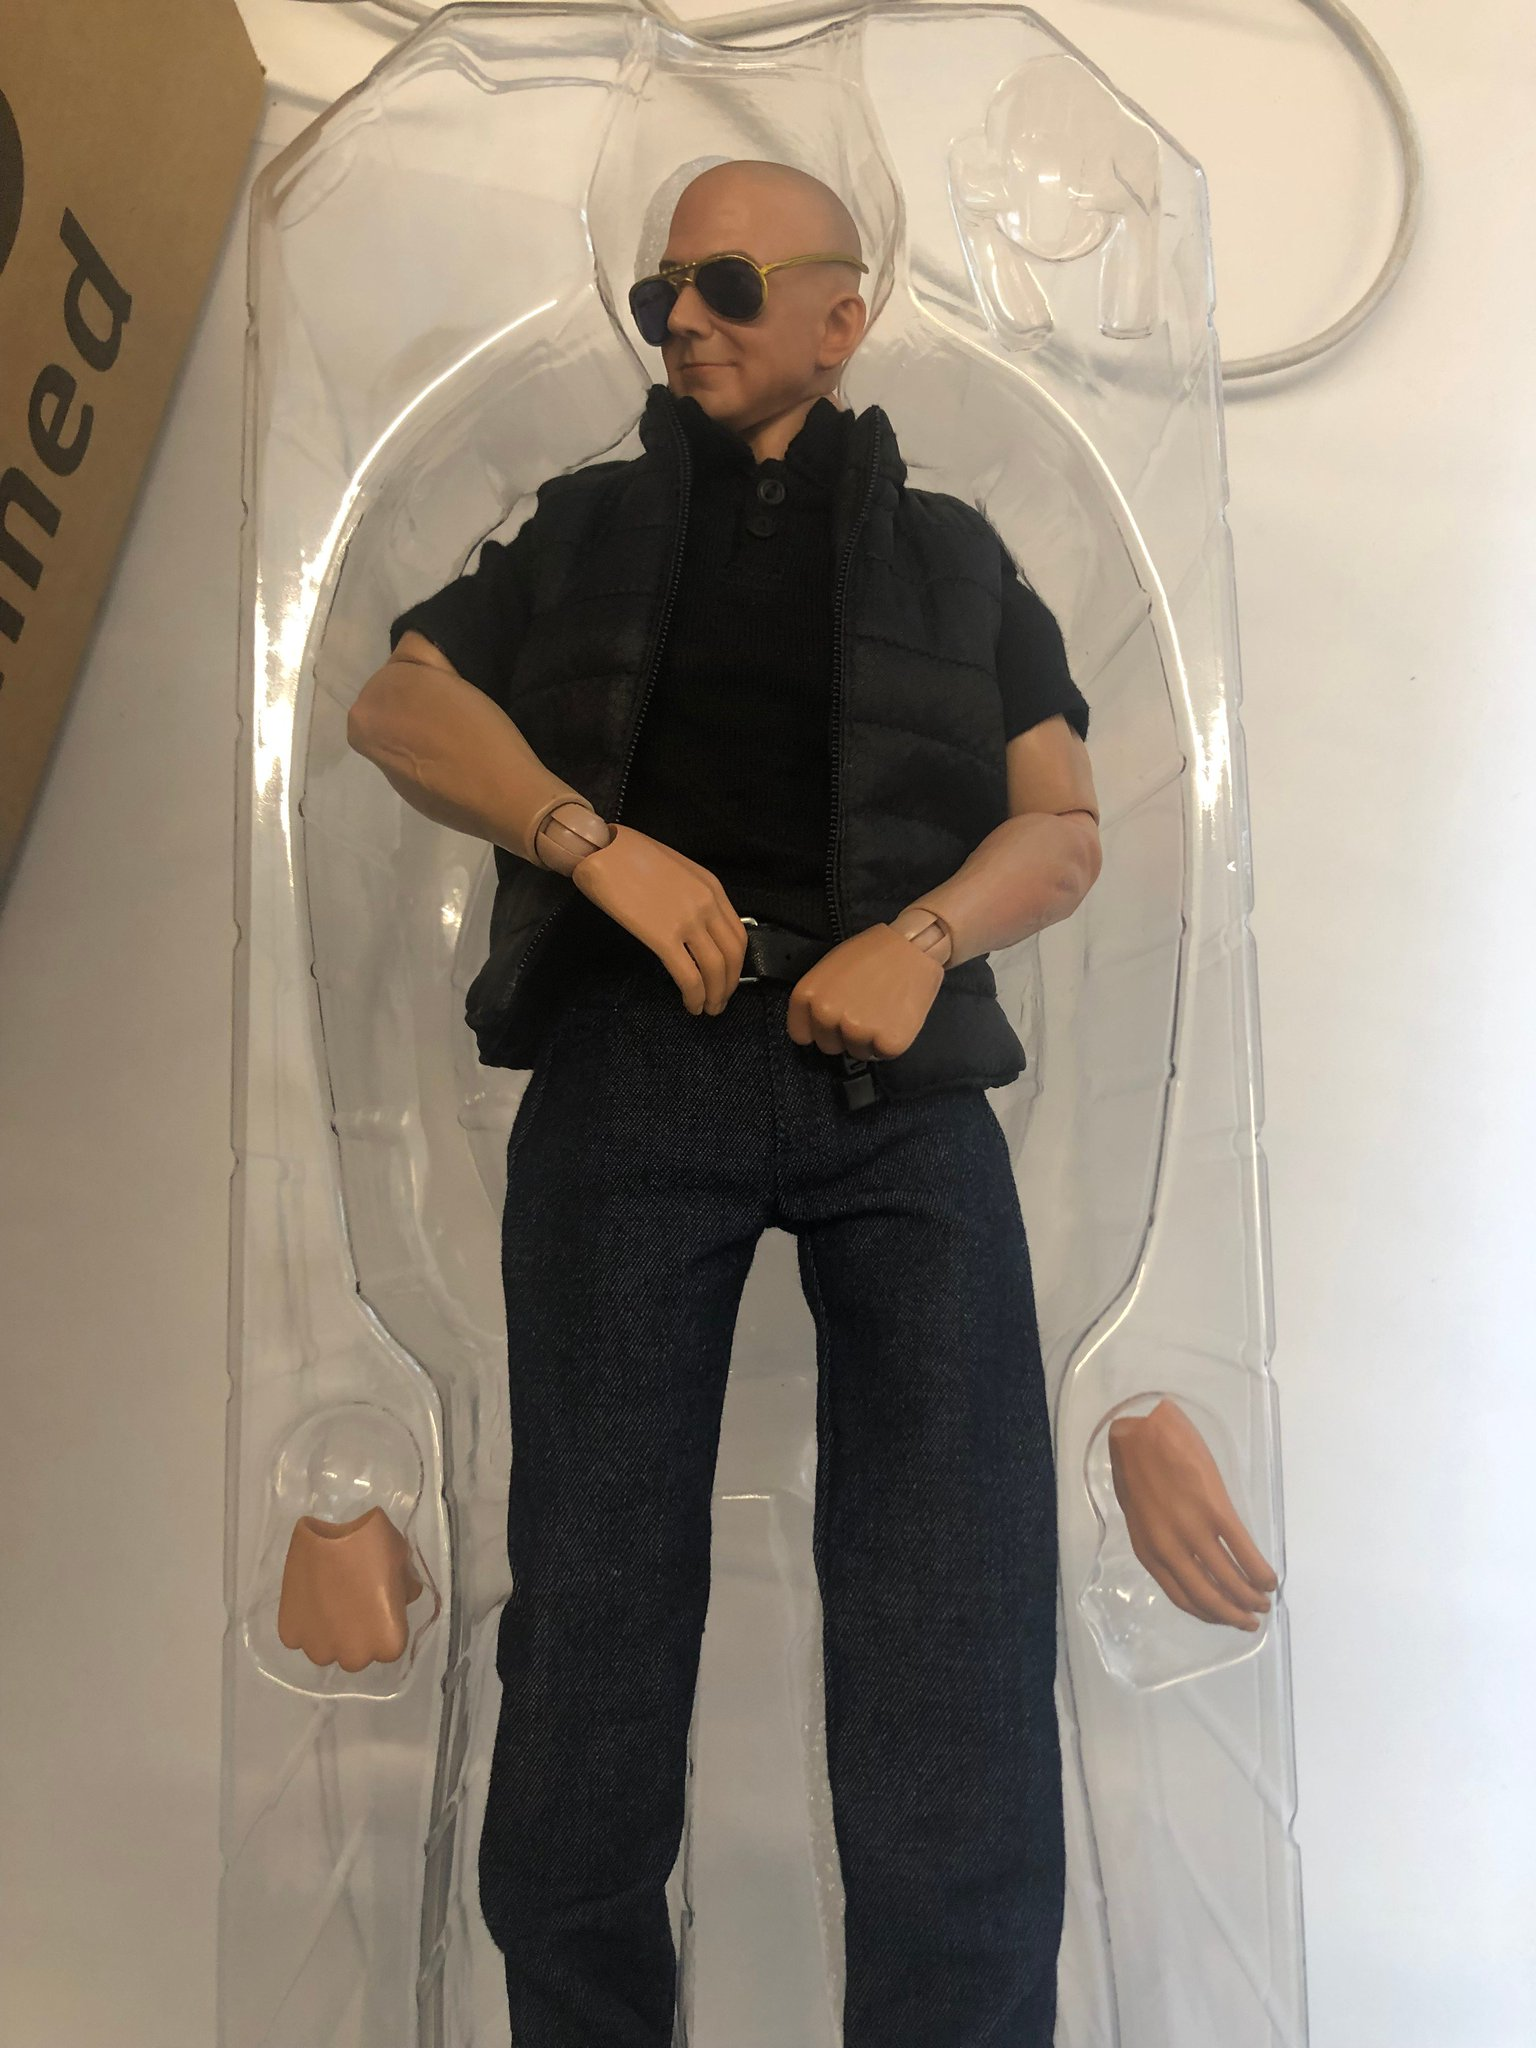 Received this Jeff Bezos action figure ...